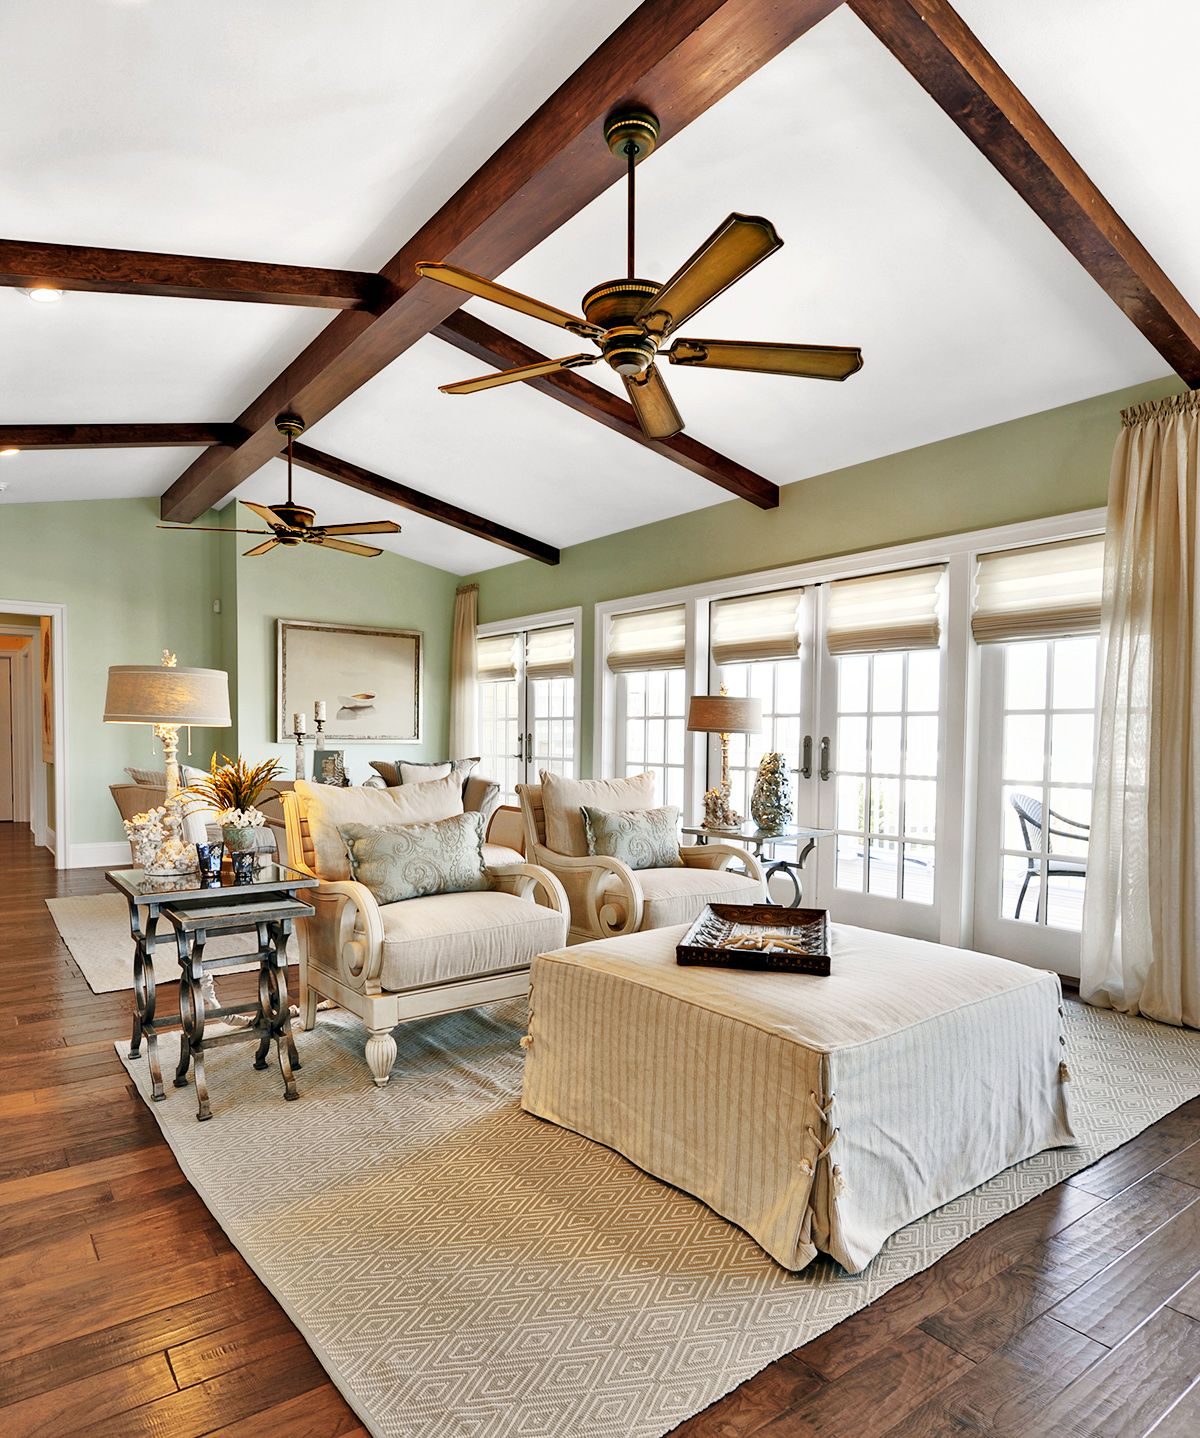 How to Size and Install a Ceiling Fan Vaulted ceiling